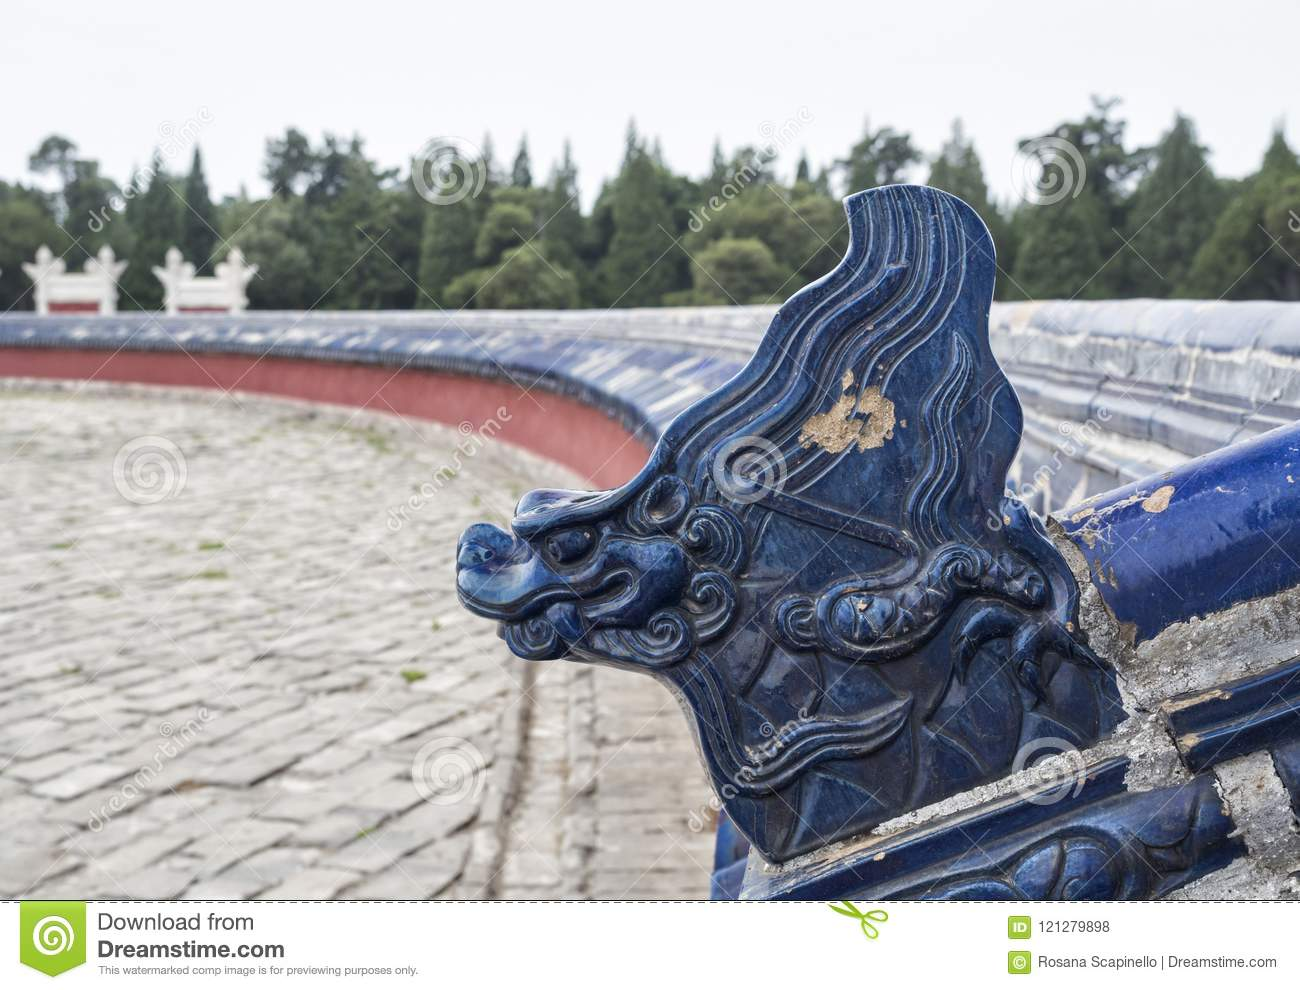 Blue Dragon face decoration at The Circular Mound Altar at the Temple of Heaven, Beijing, China, Asia